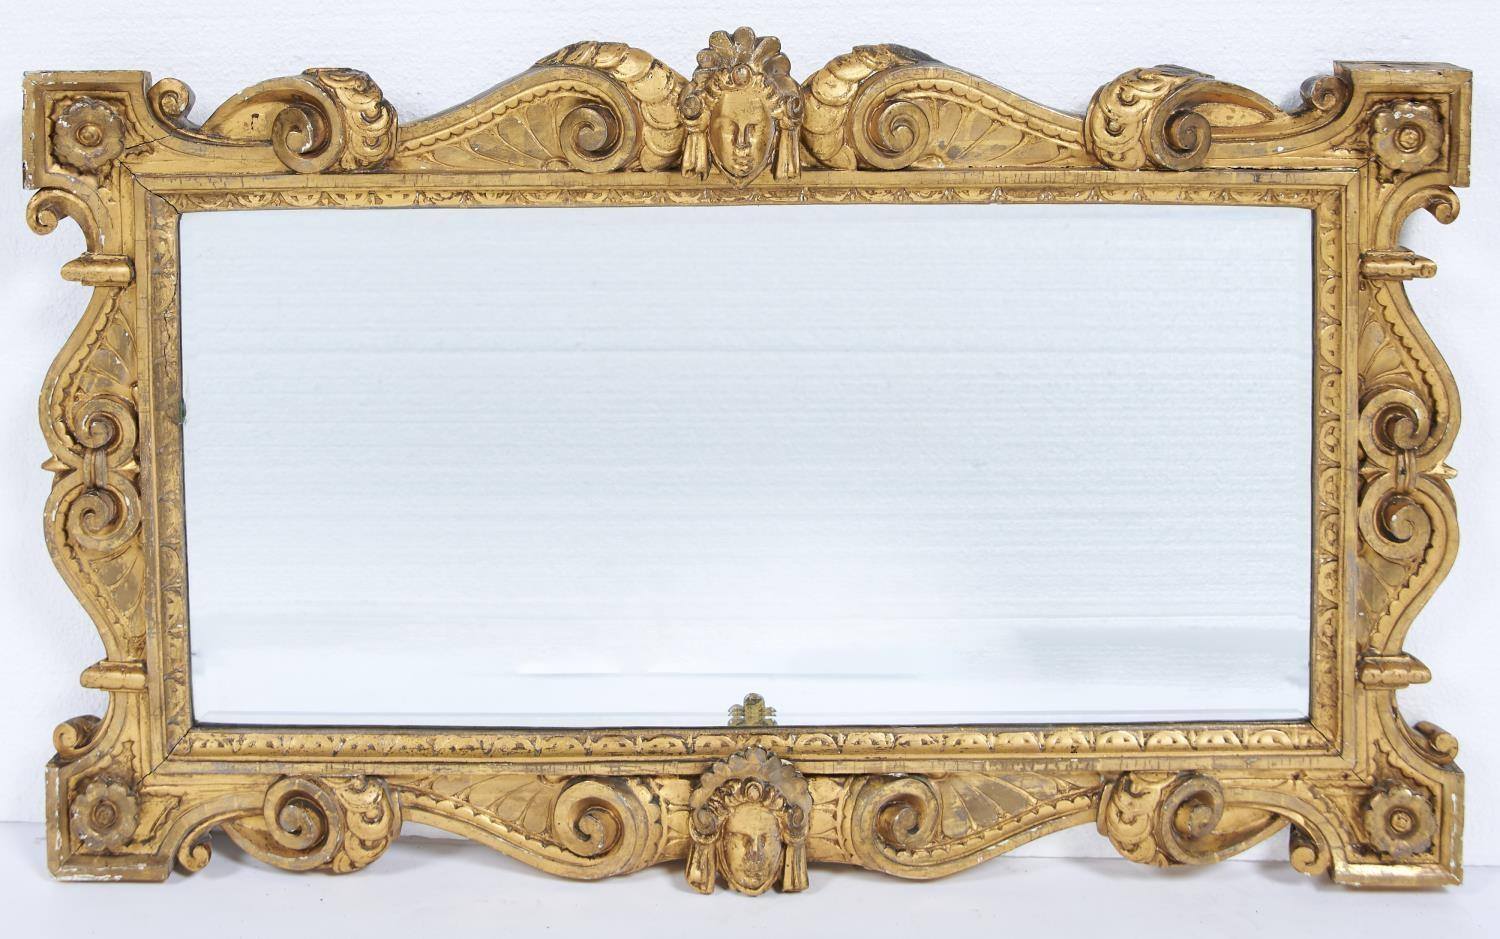 A VICTORIAN GILTWOOD MIRROR, KENTIAN STYLE, 19TH C, THE FRAME CARVED WITH C AND S SCROLLS CENTRED BY